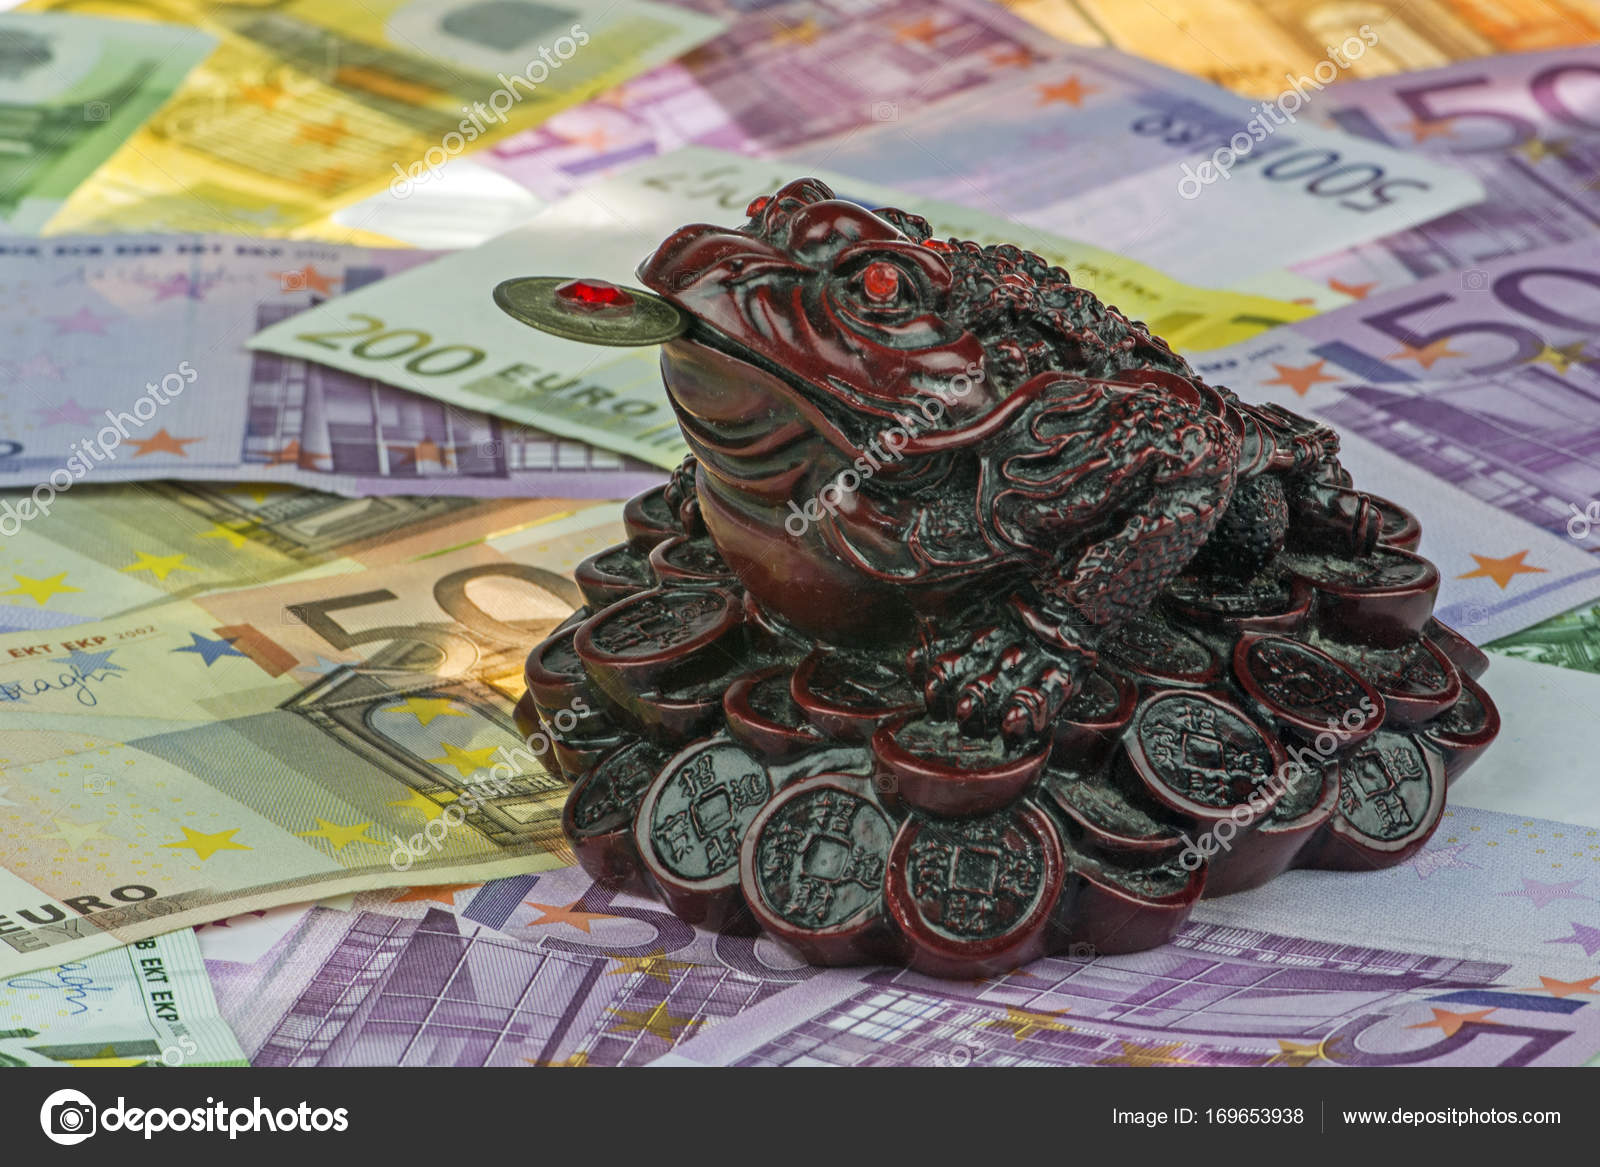 Three legged money toad jin chan as a chinese symbol of wealth on three legged money toad jin chan as a chinese symbol of wealth on variety of euro currency eur with 500 200 100 and 50 euro bank notes many money biocorpaavc Images